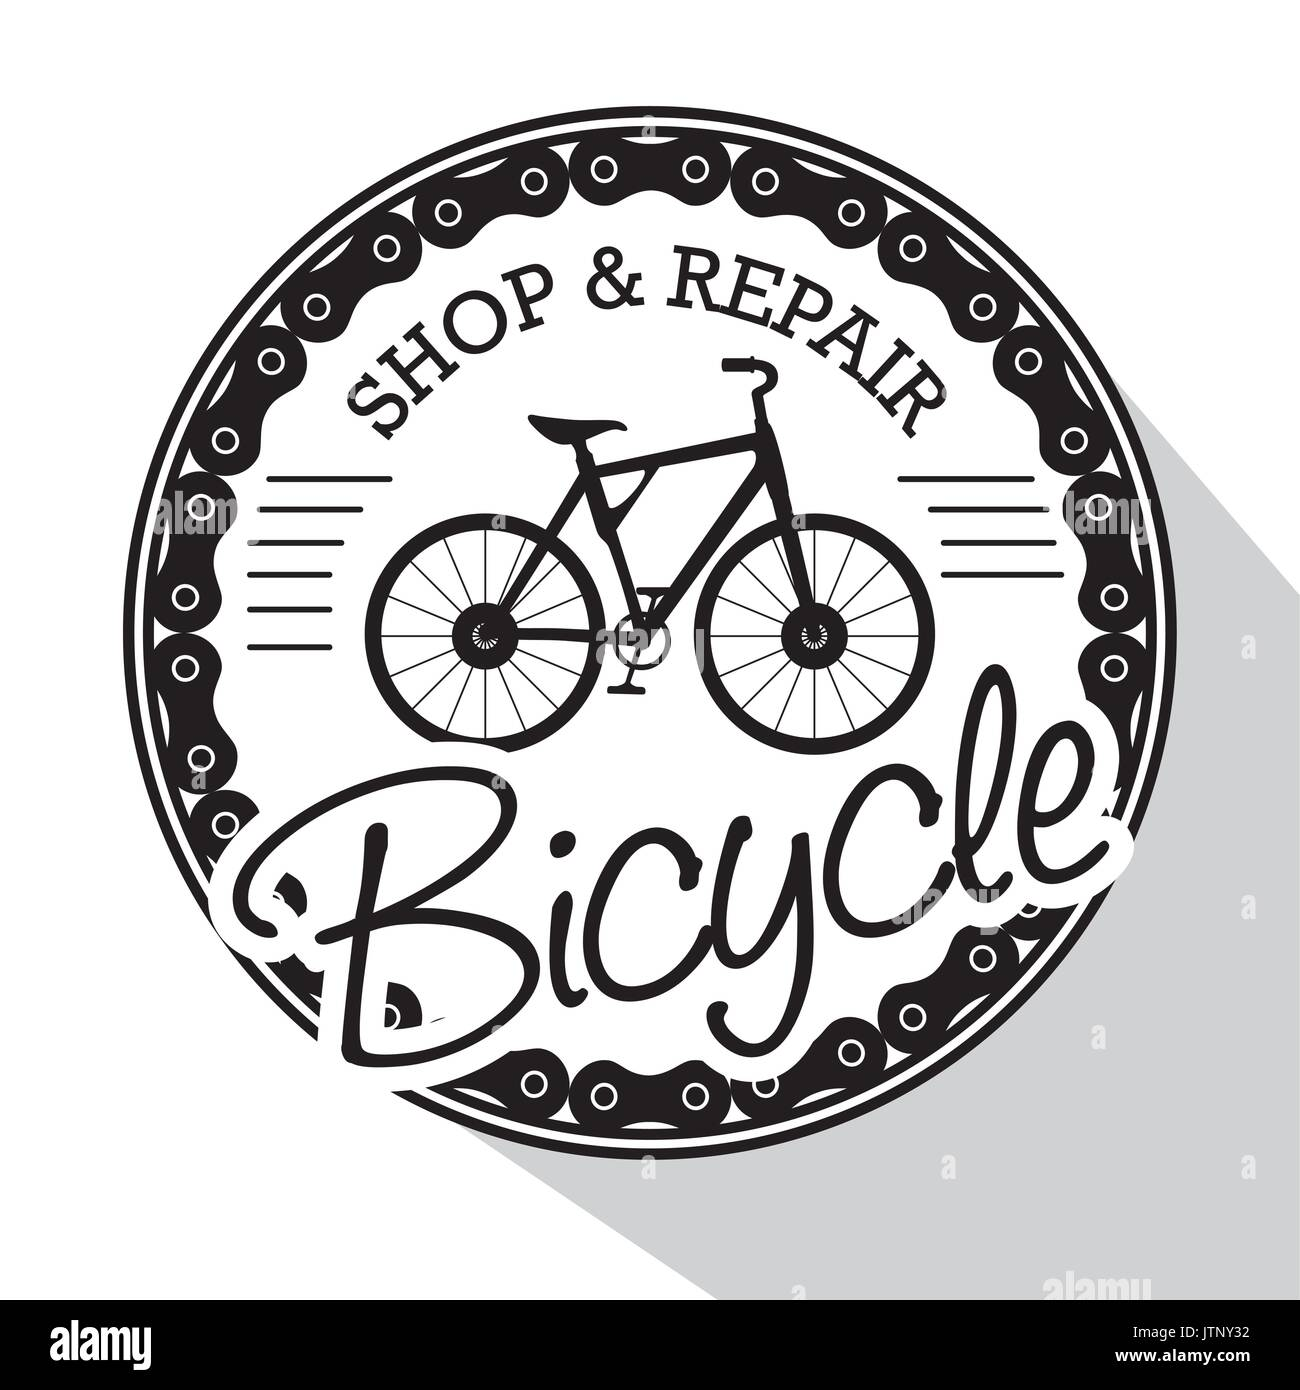 Modern Bike Shop Logo Vector Illustration Graphic Design Stock